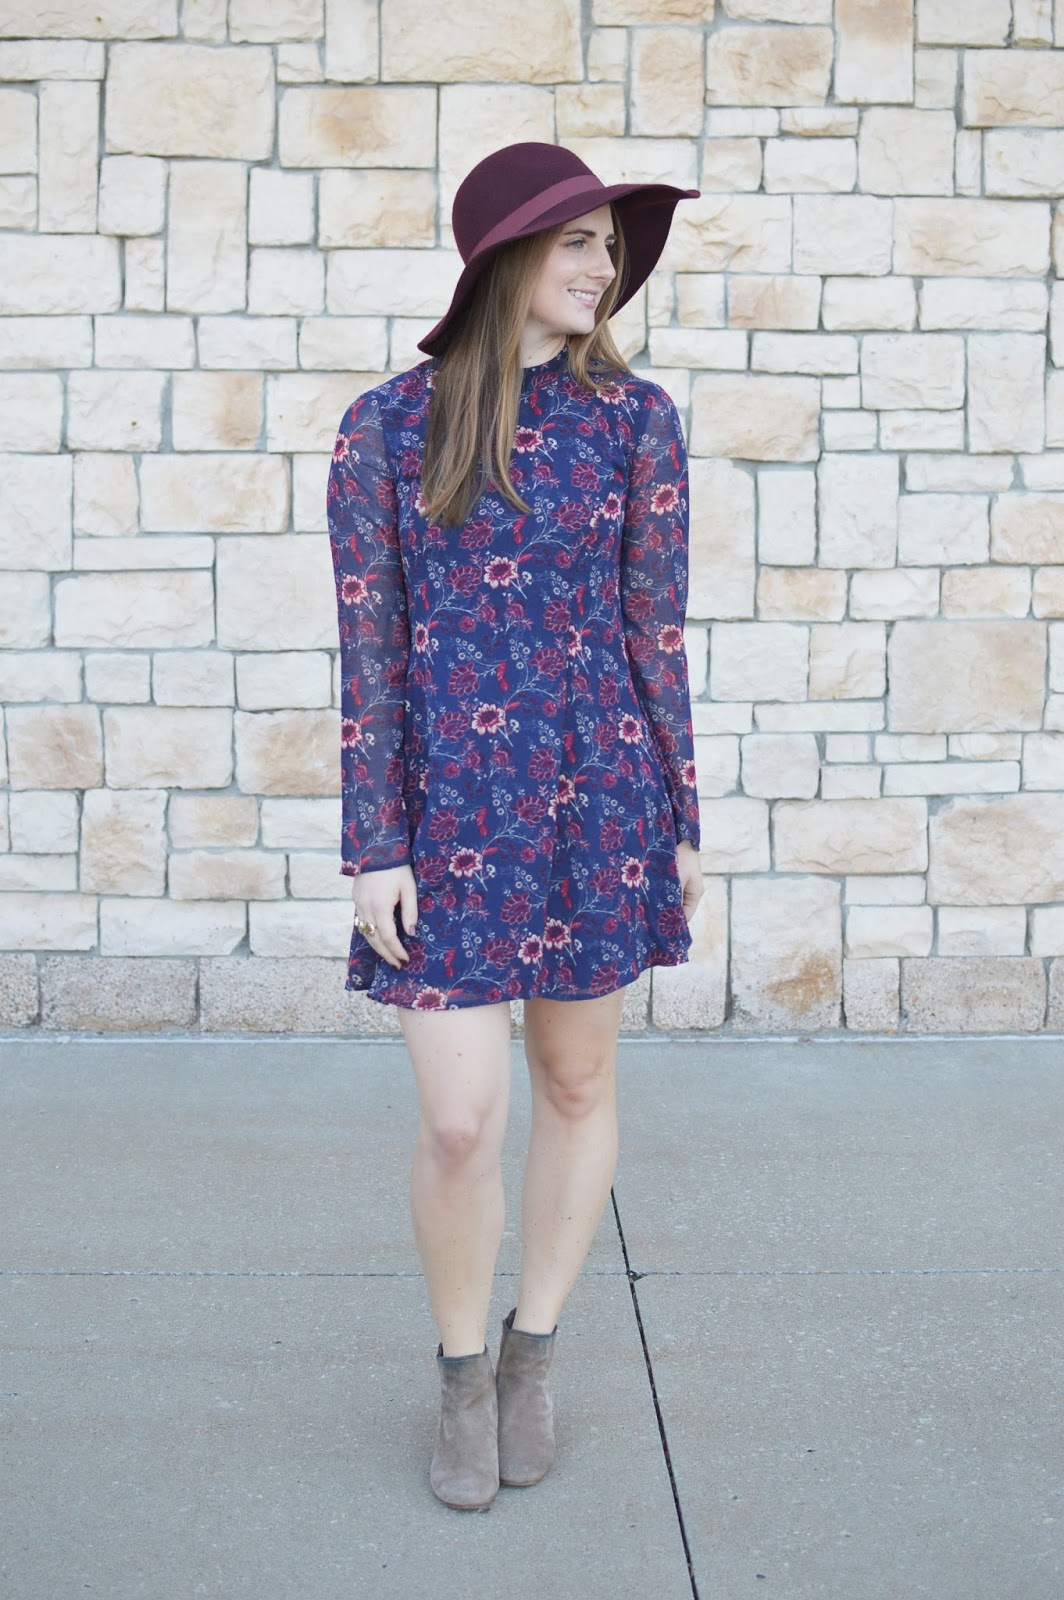 floral print dress for fall | what to wear this fall | dress with a floppy hat and booties | cute fall outfit ideas | fall outfits | a memory of us |